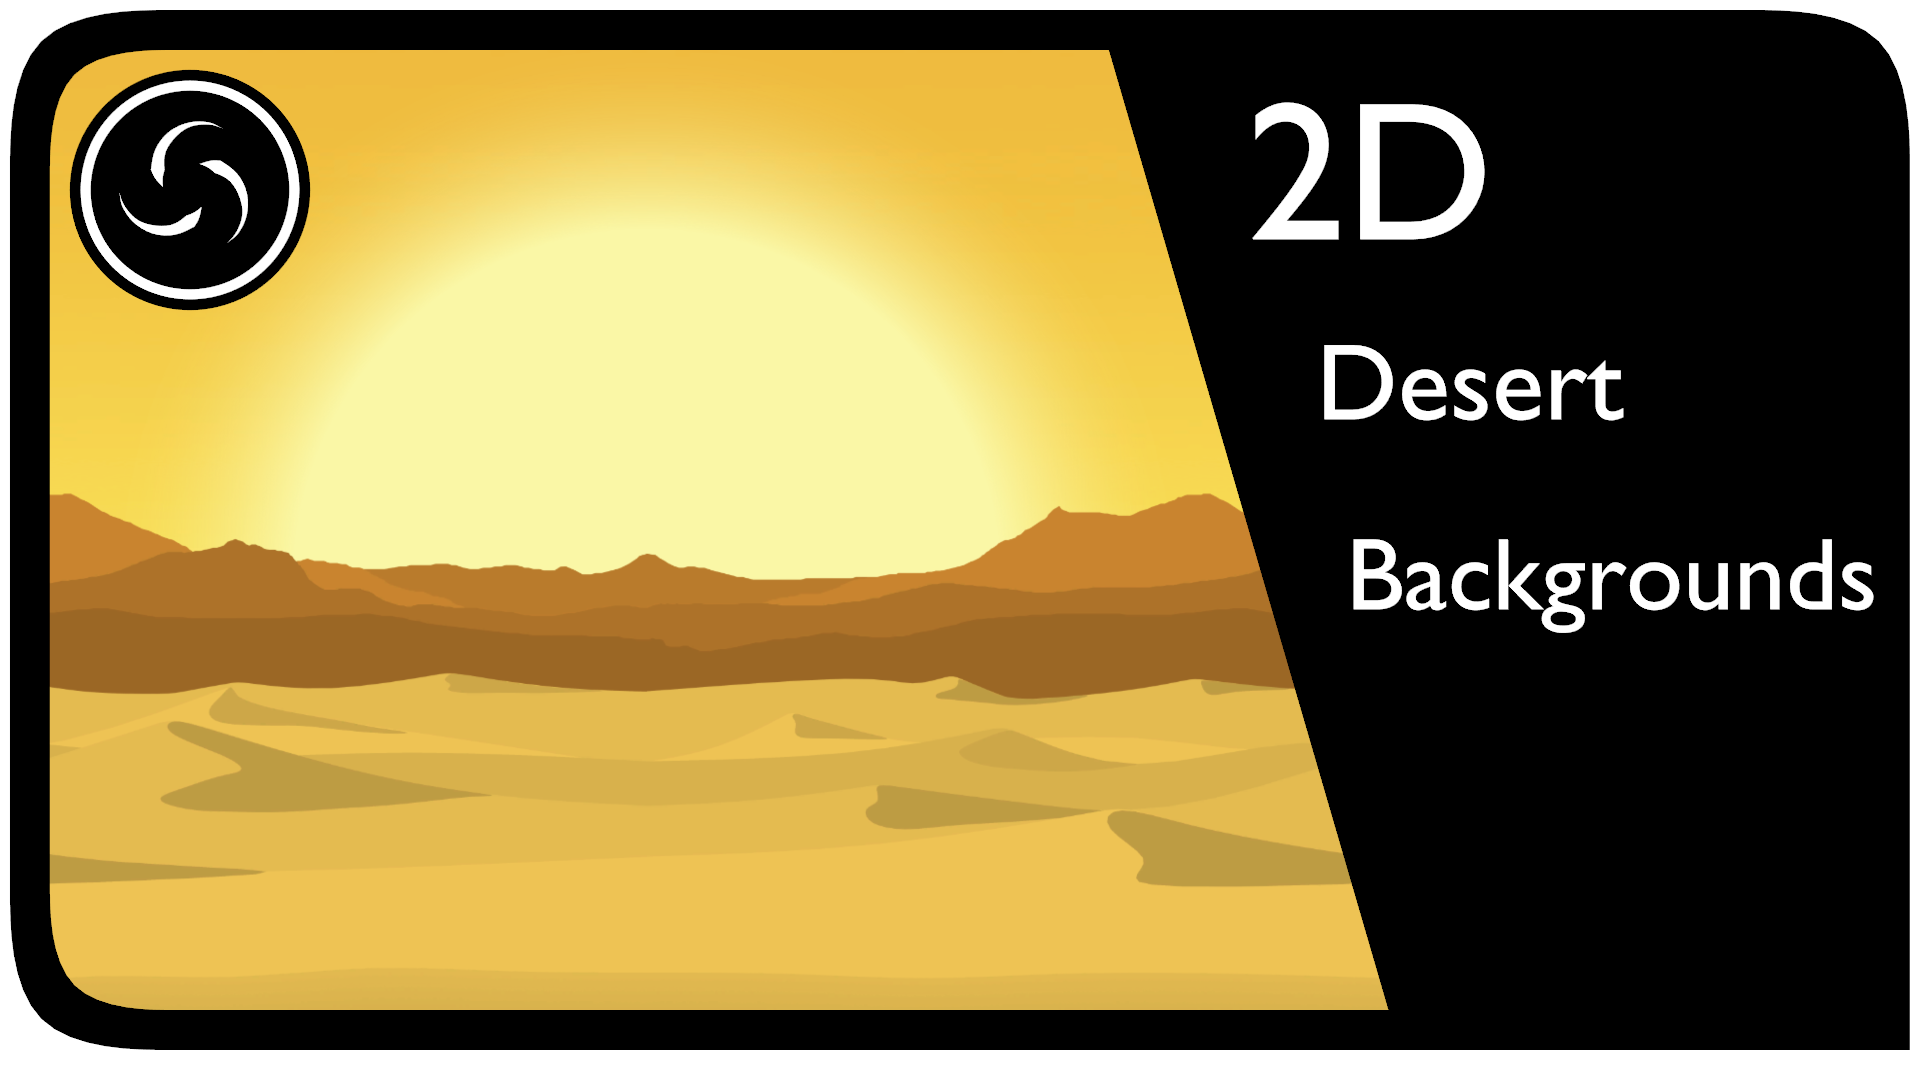 2D Desert Backgrounds